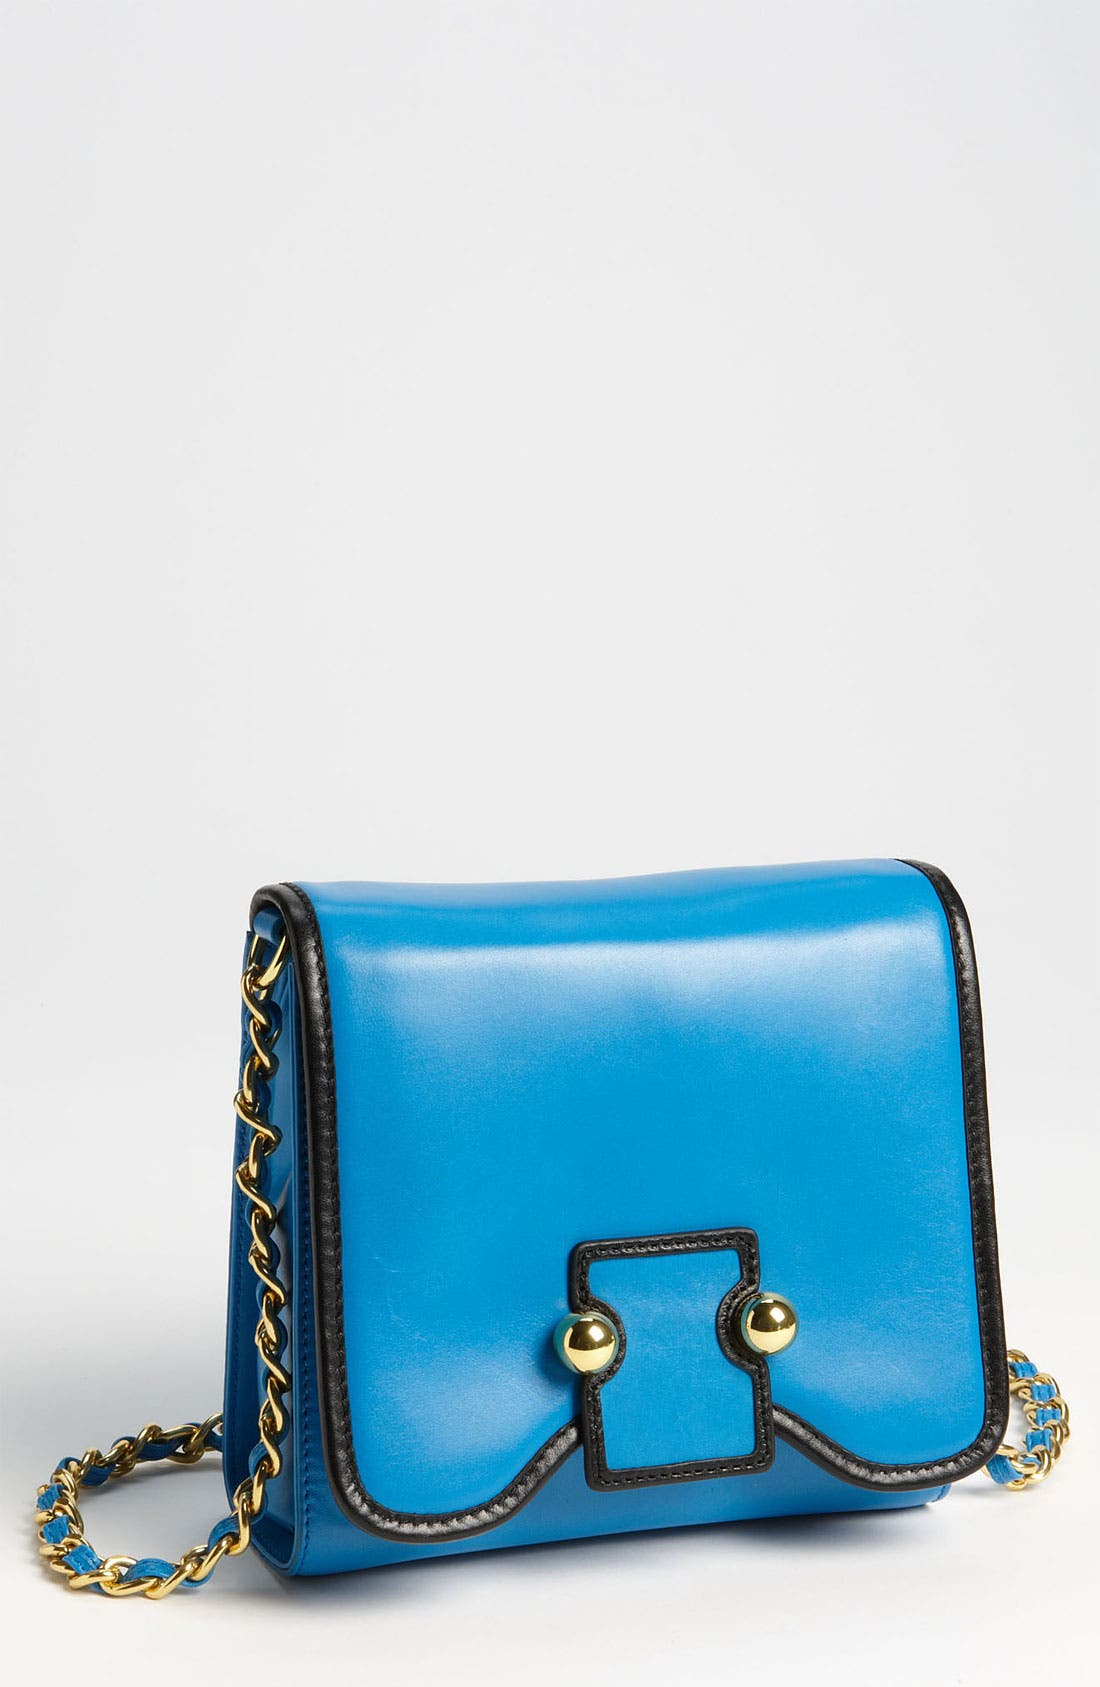 Alternate Image 1 Selected - Botkier 'Lucy' Crossbody Bag